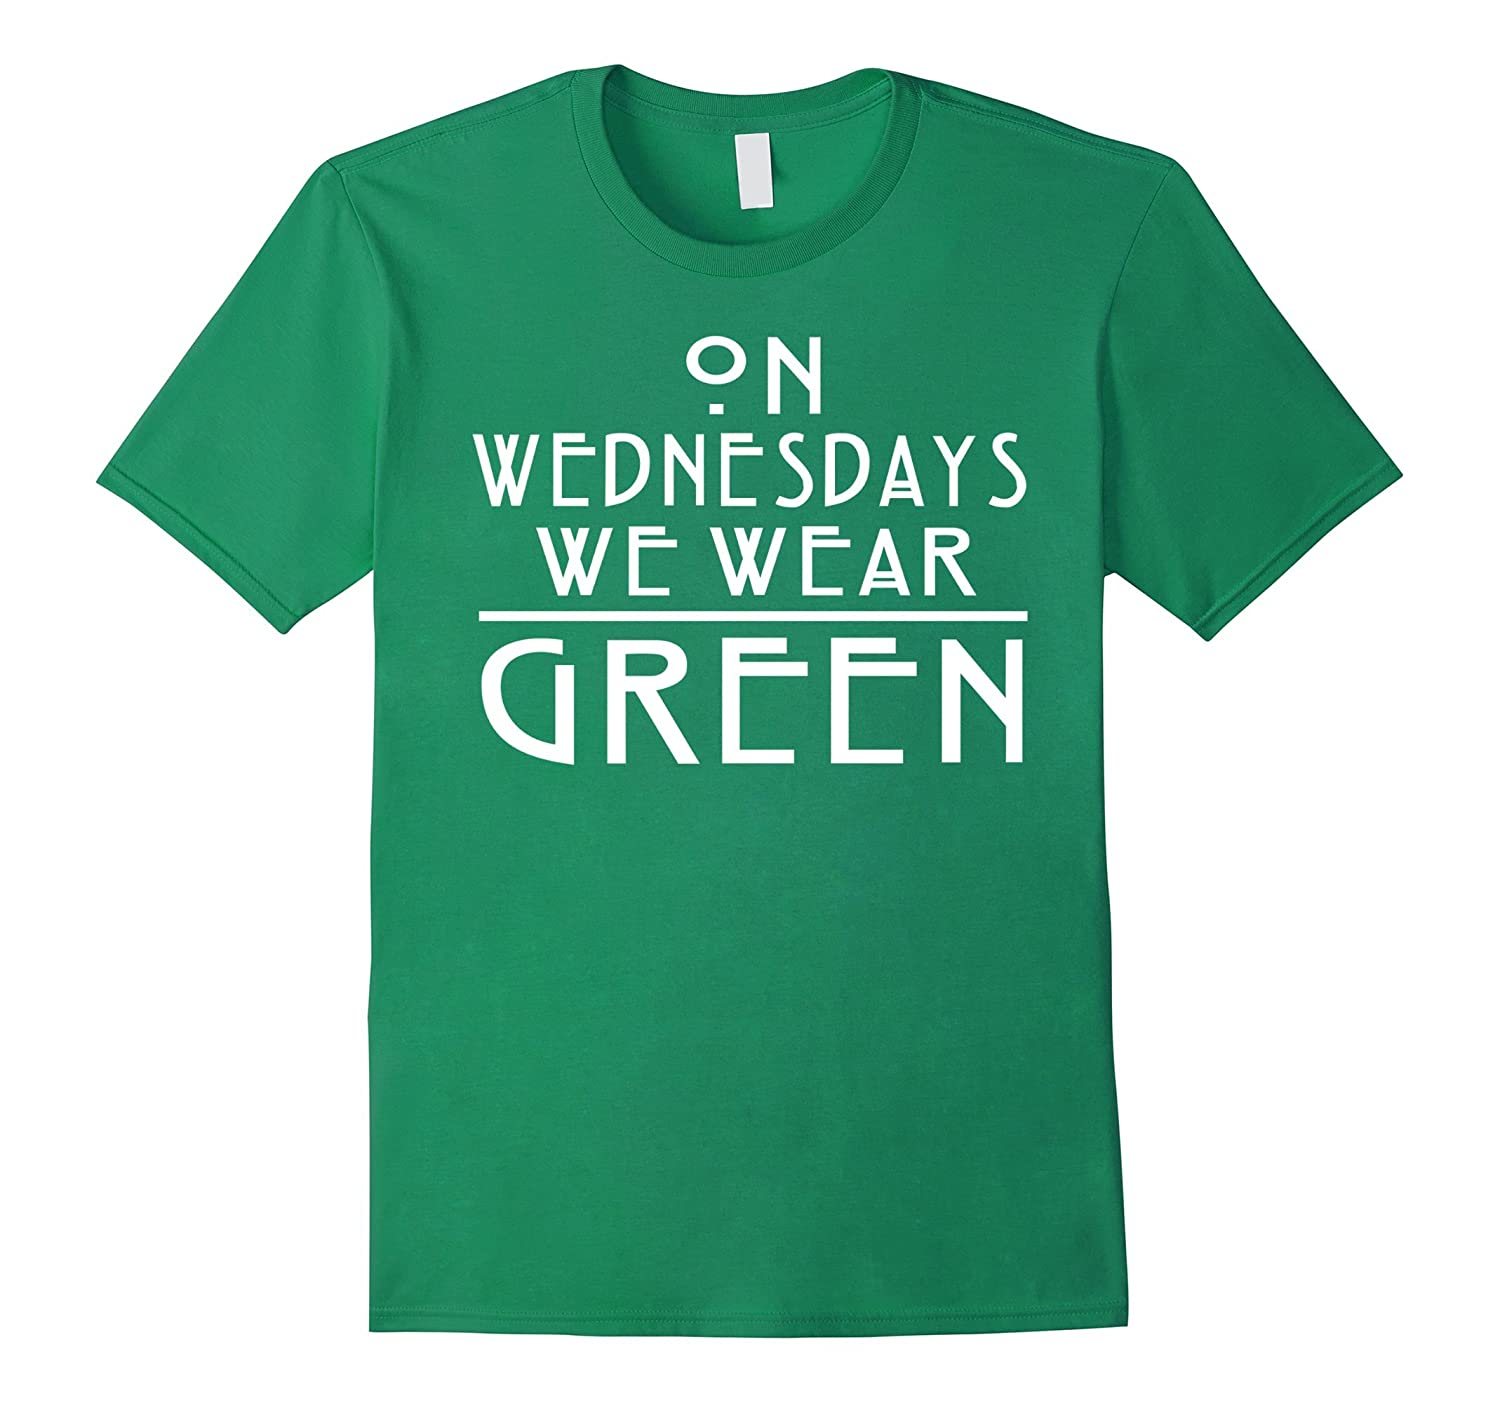 ON WEDNESDAYS WE WEAR GREEN T-SHIRT Funny Humor Gift-TH